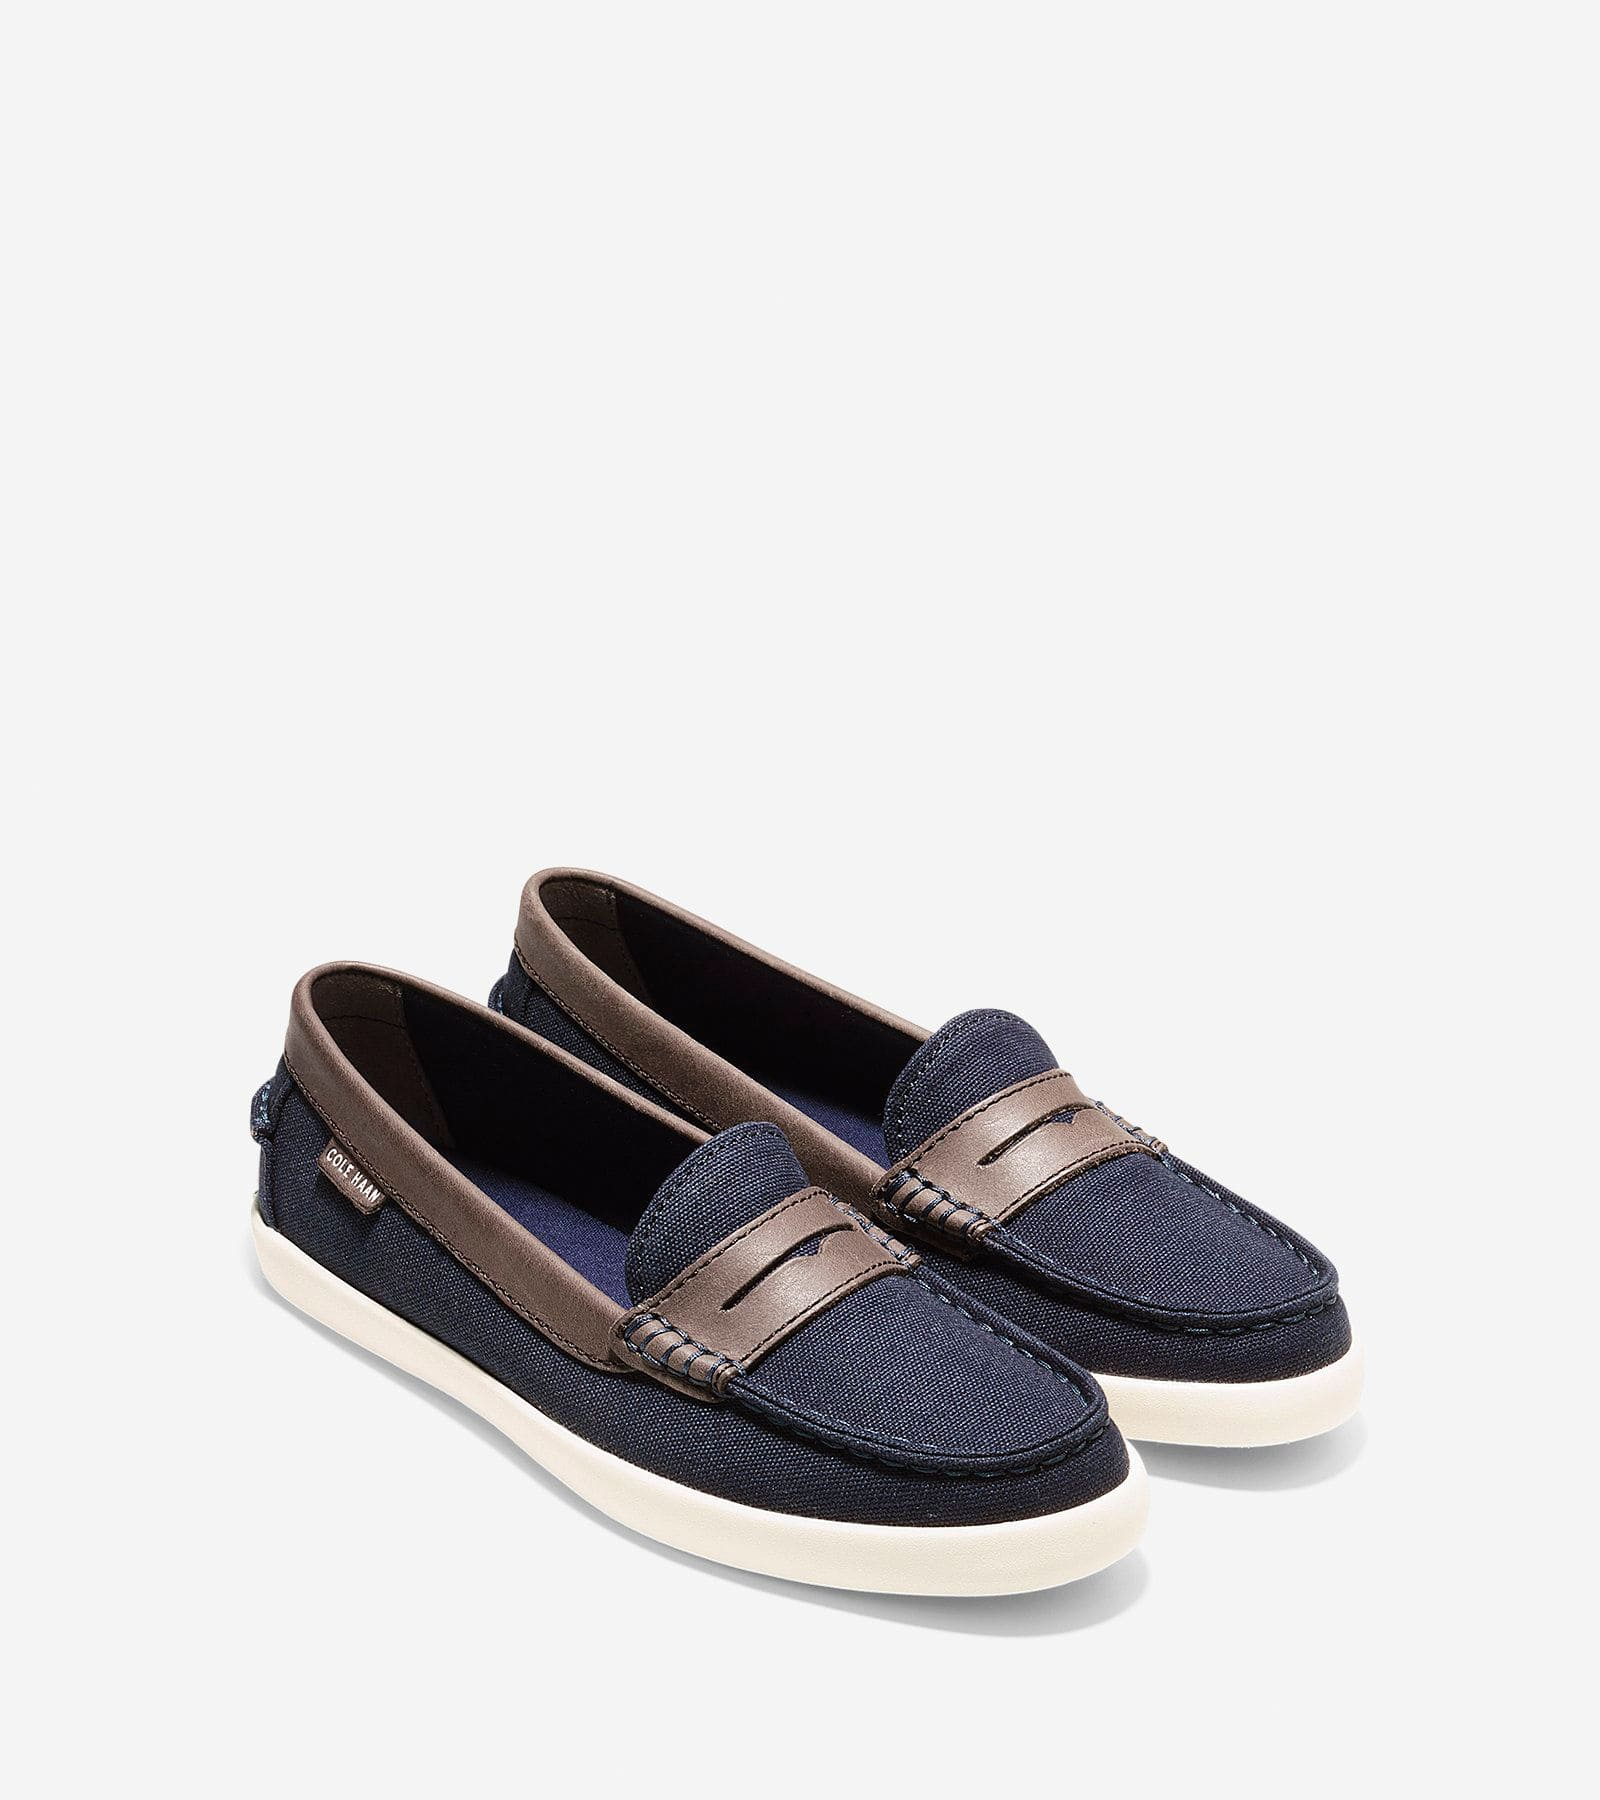 952e11105fe Cole Haan  35 Women s Nantucket Loafer - Extra 30% off total purchase +  Free 2 day ship with ShopRunner